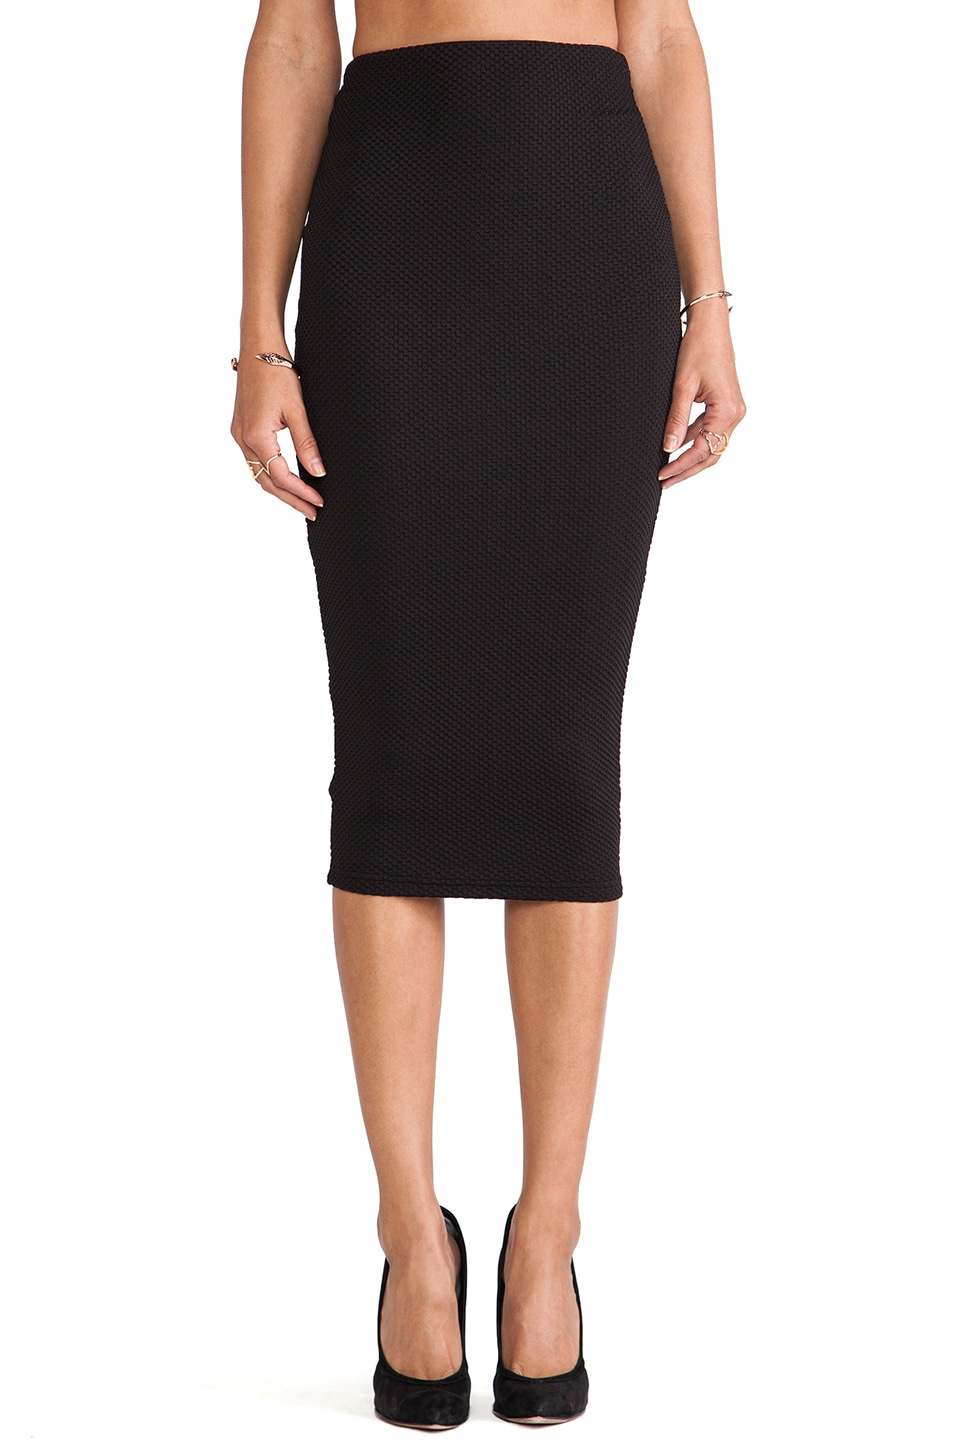 Nookie Pucker Up Pencil Skirt in Black